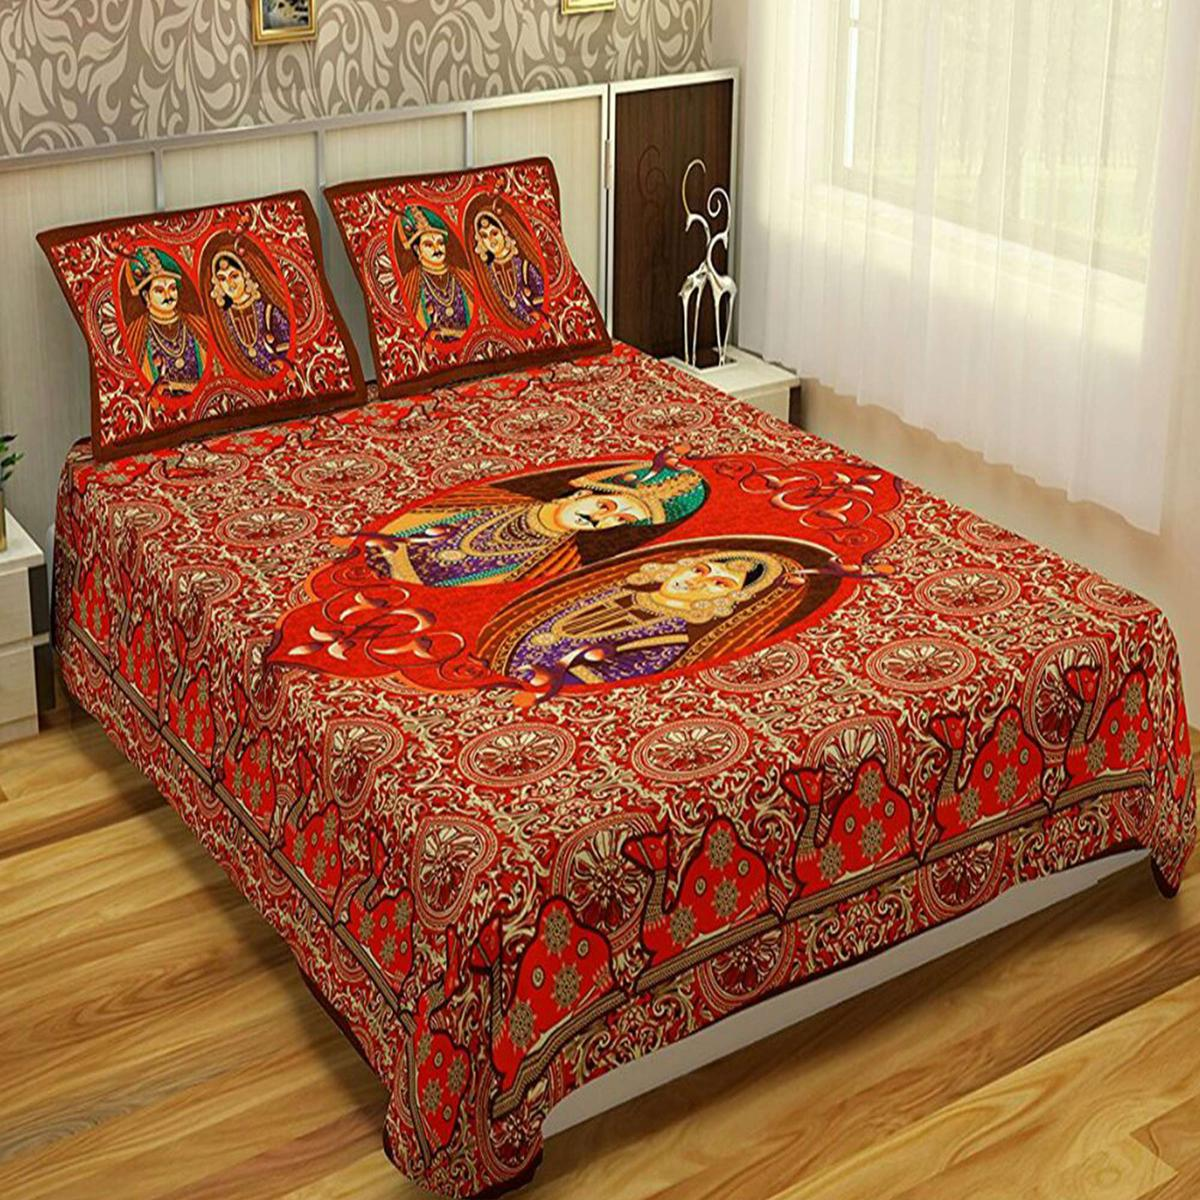 Alluring Red Colored Printed Cotton Double Bedsheet With 2 Pillow Cover